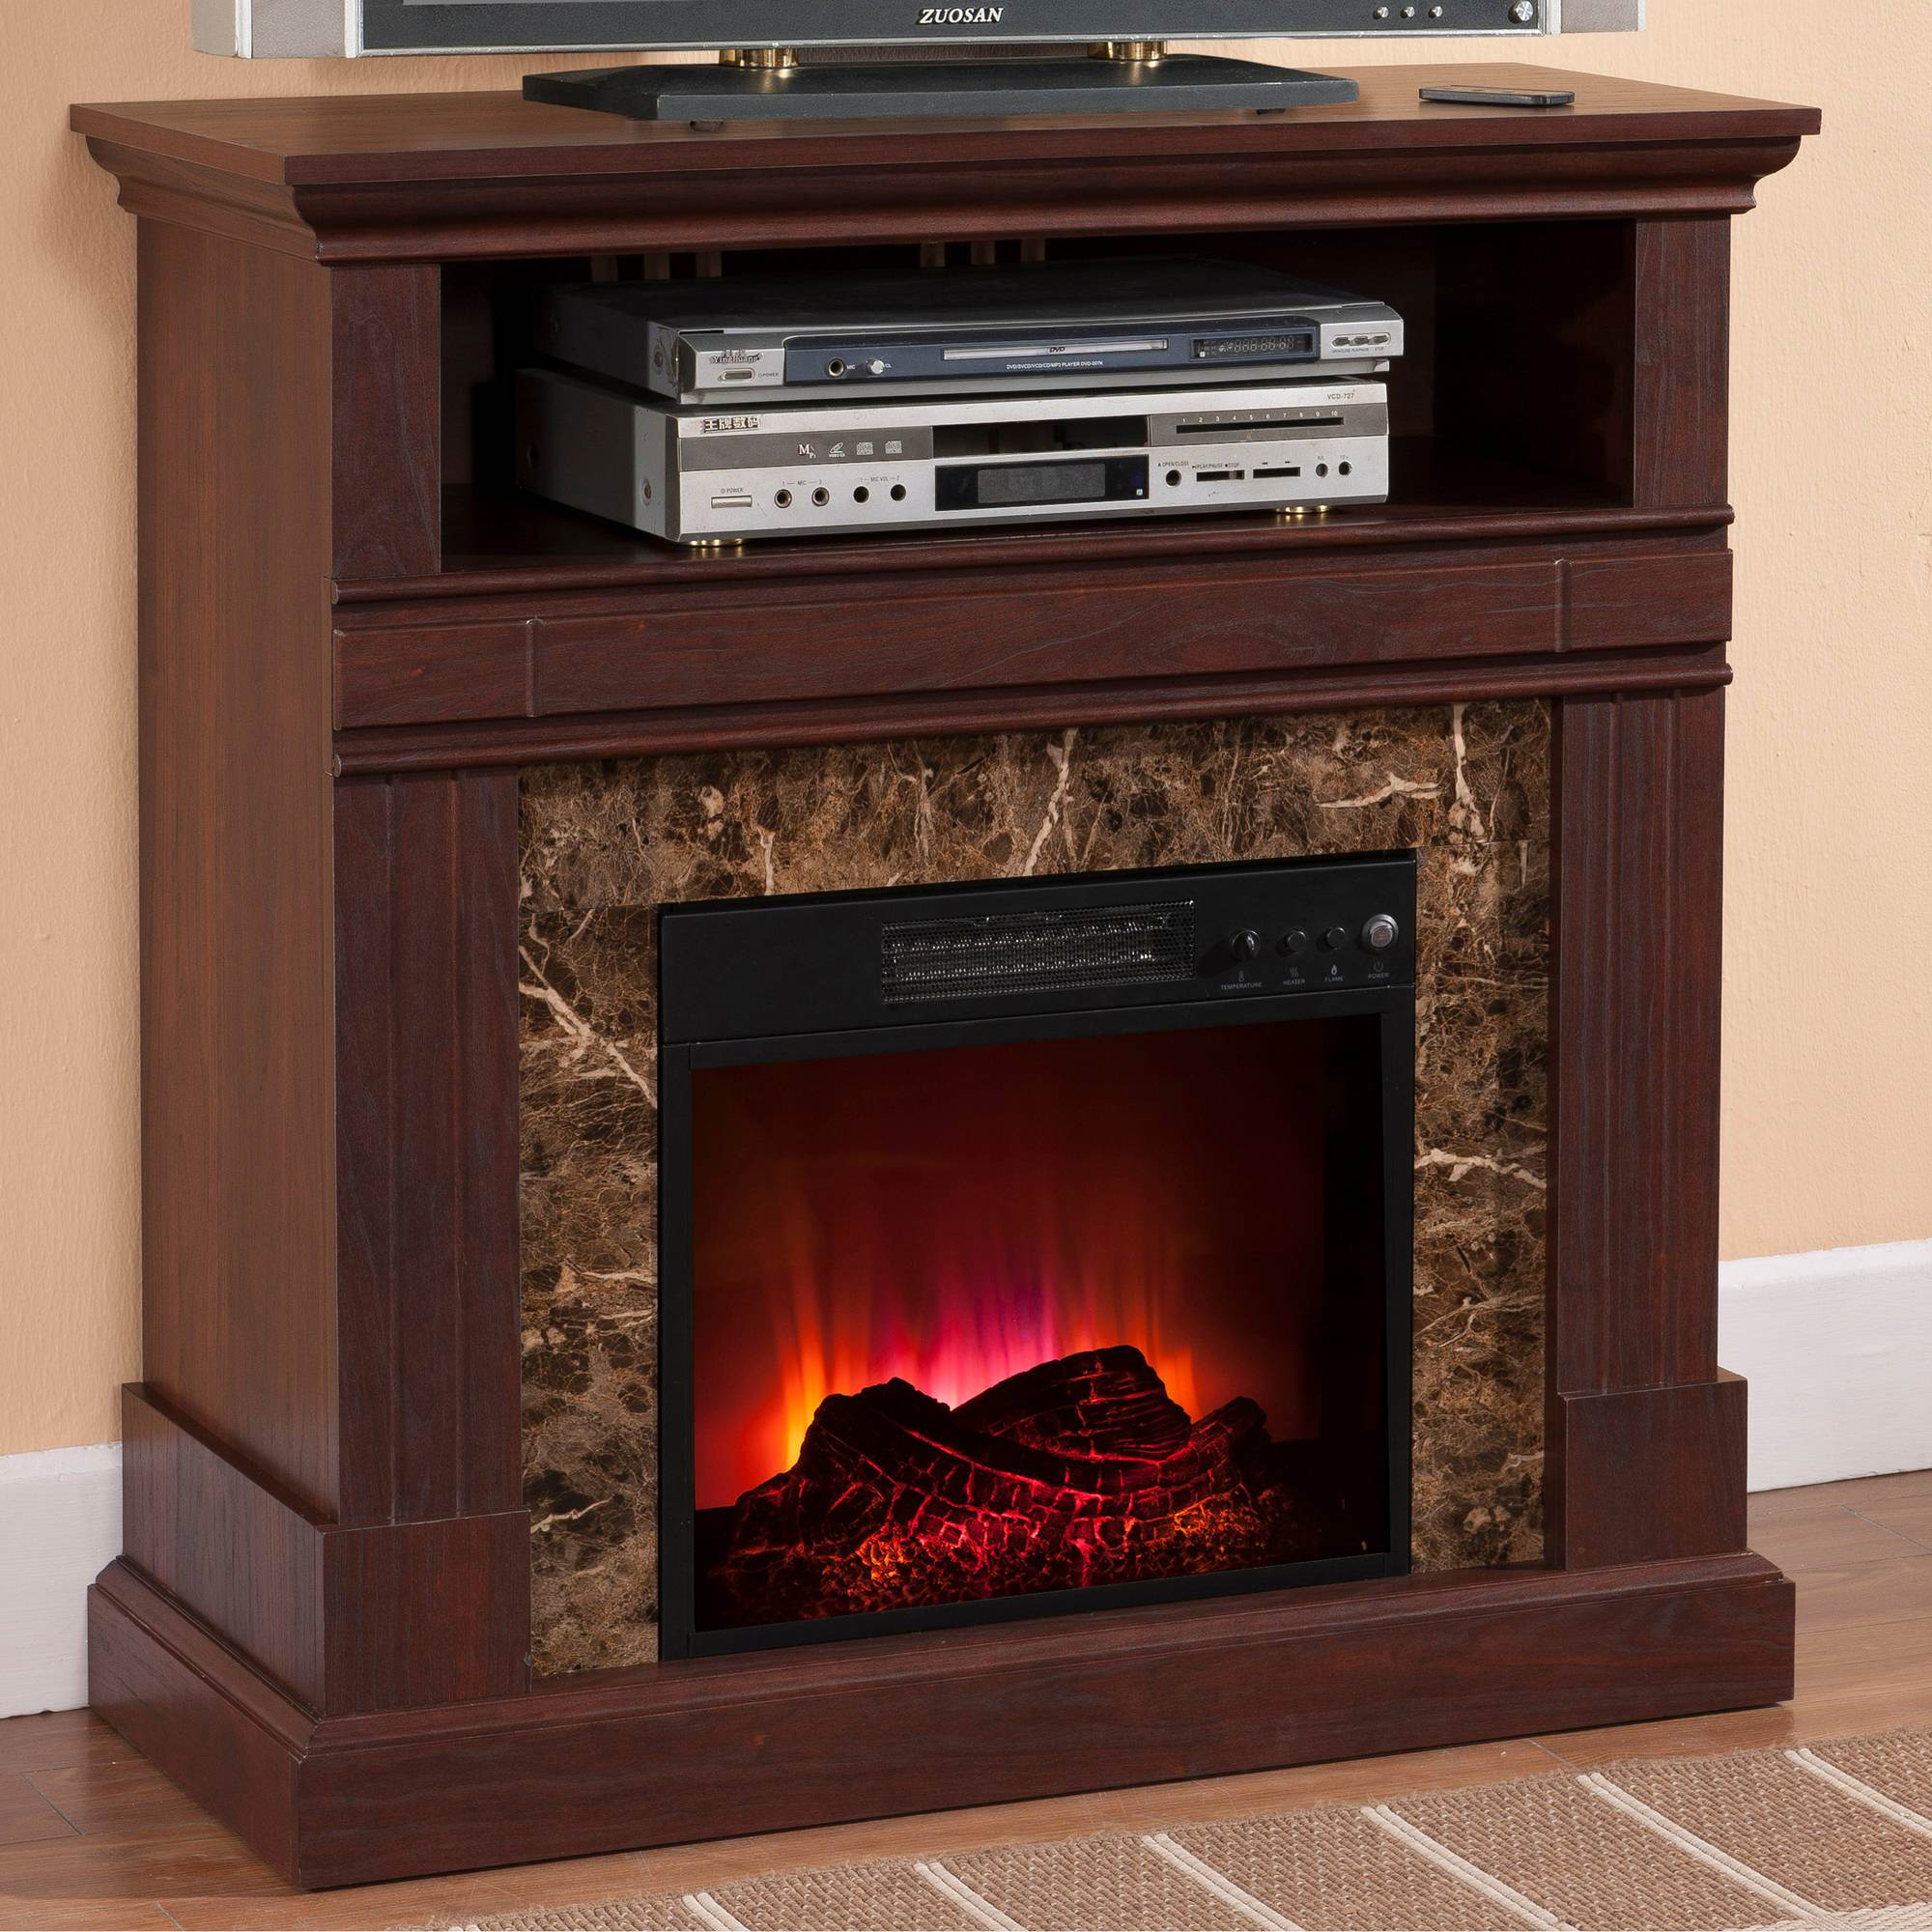 White Corner Fireplace Tv Stand New Corner Electric Fireplace Tv Stand